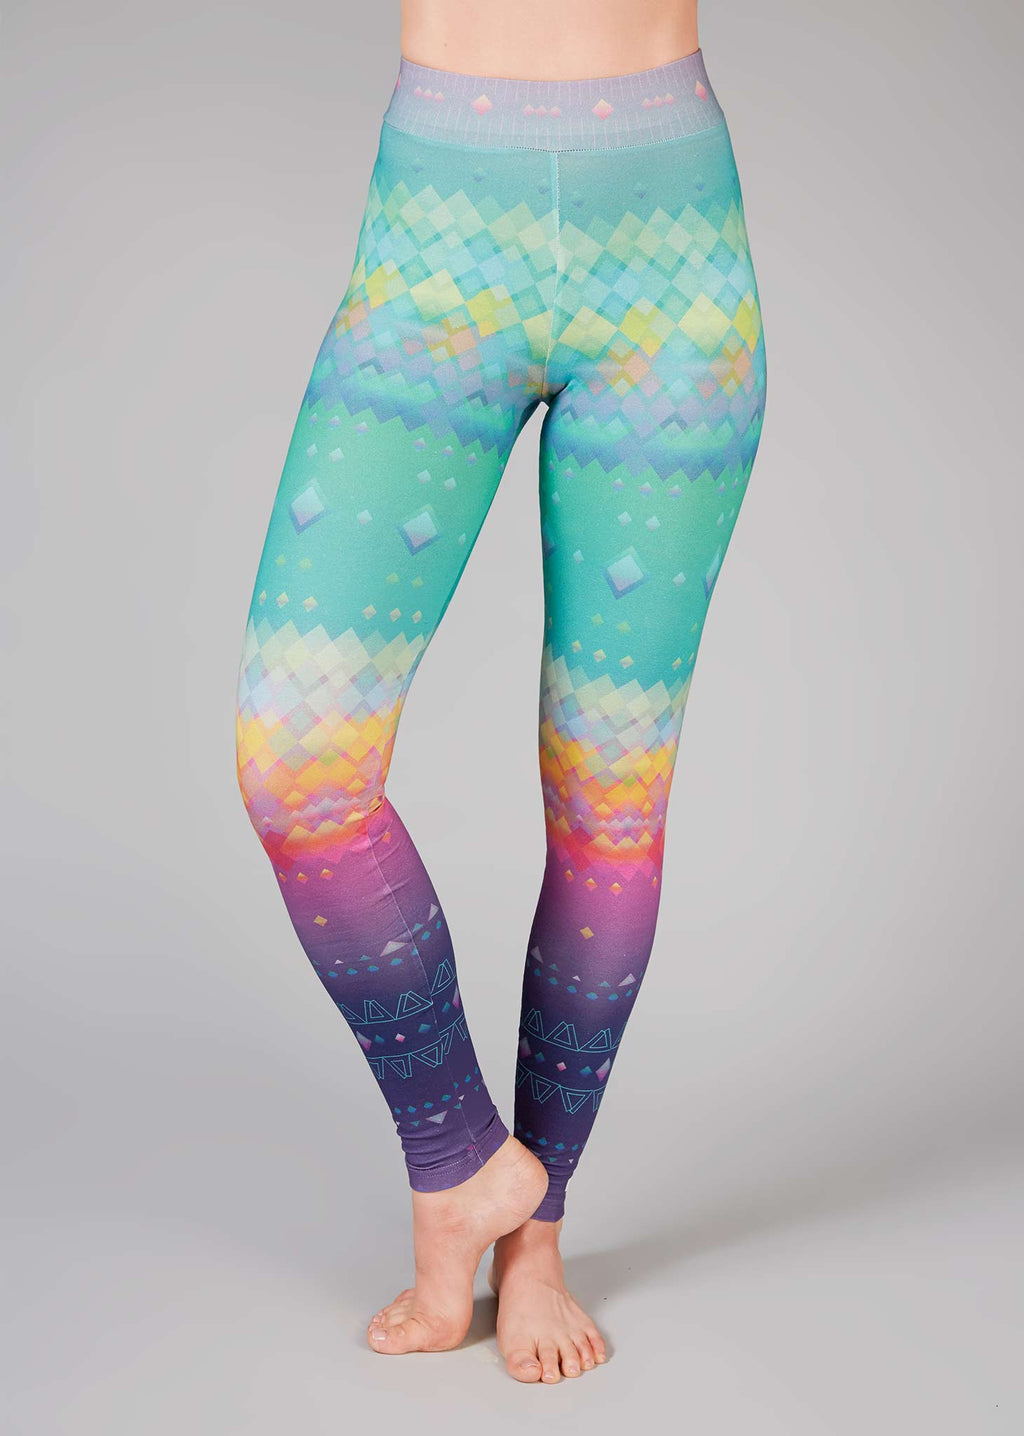 TALENTED Leggings Dream